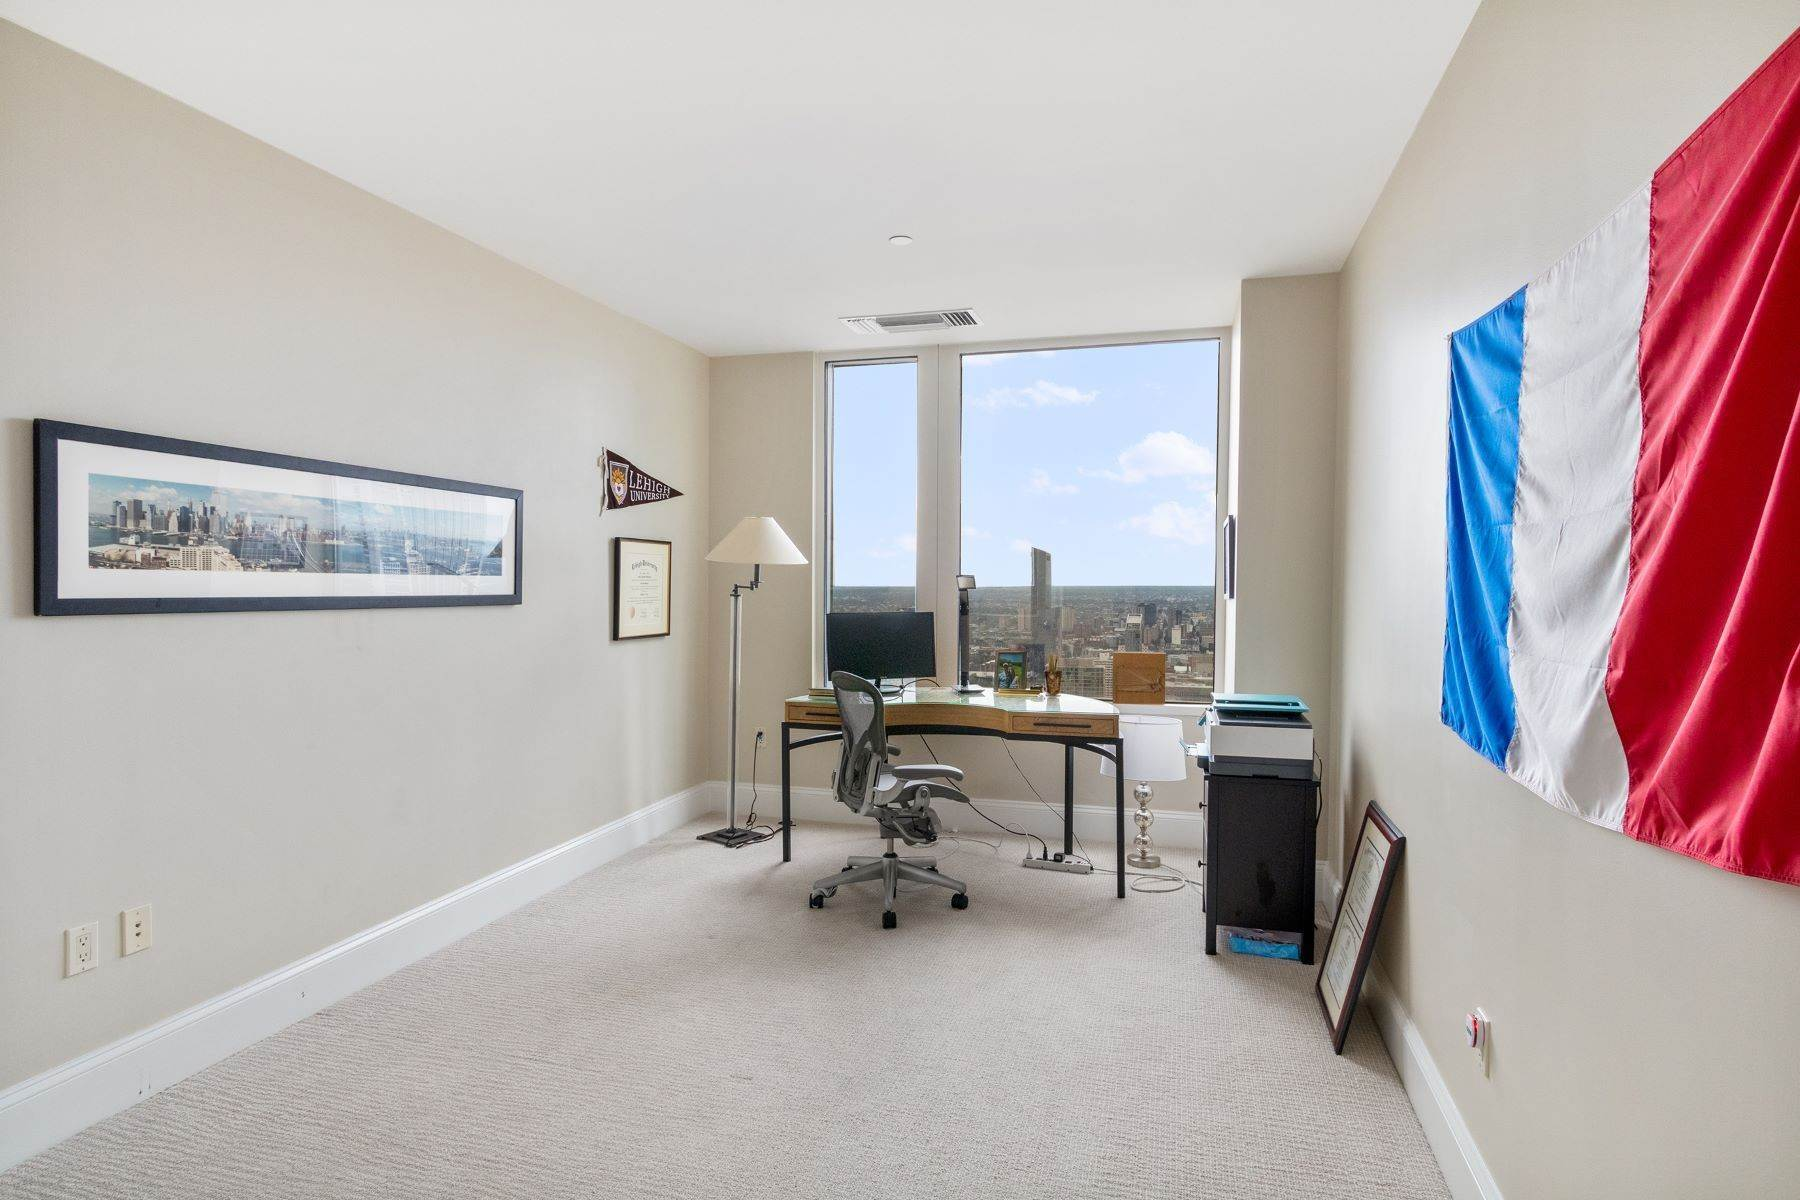 19. Apartments for Sale at 50 S 16TH ST #4202, 4202 Philadelphia, Pennsylvania 19102 United States